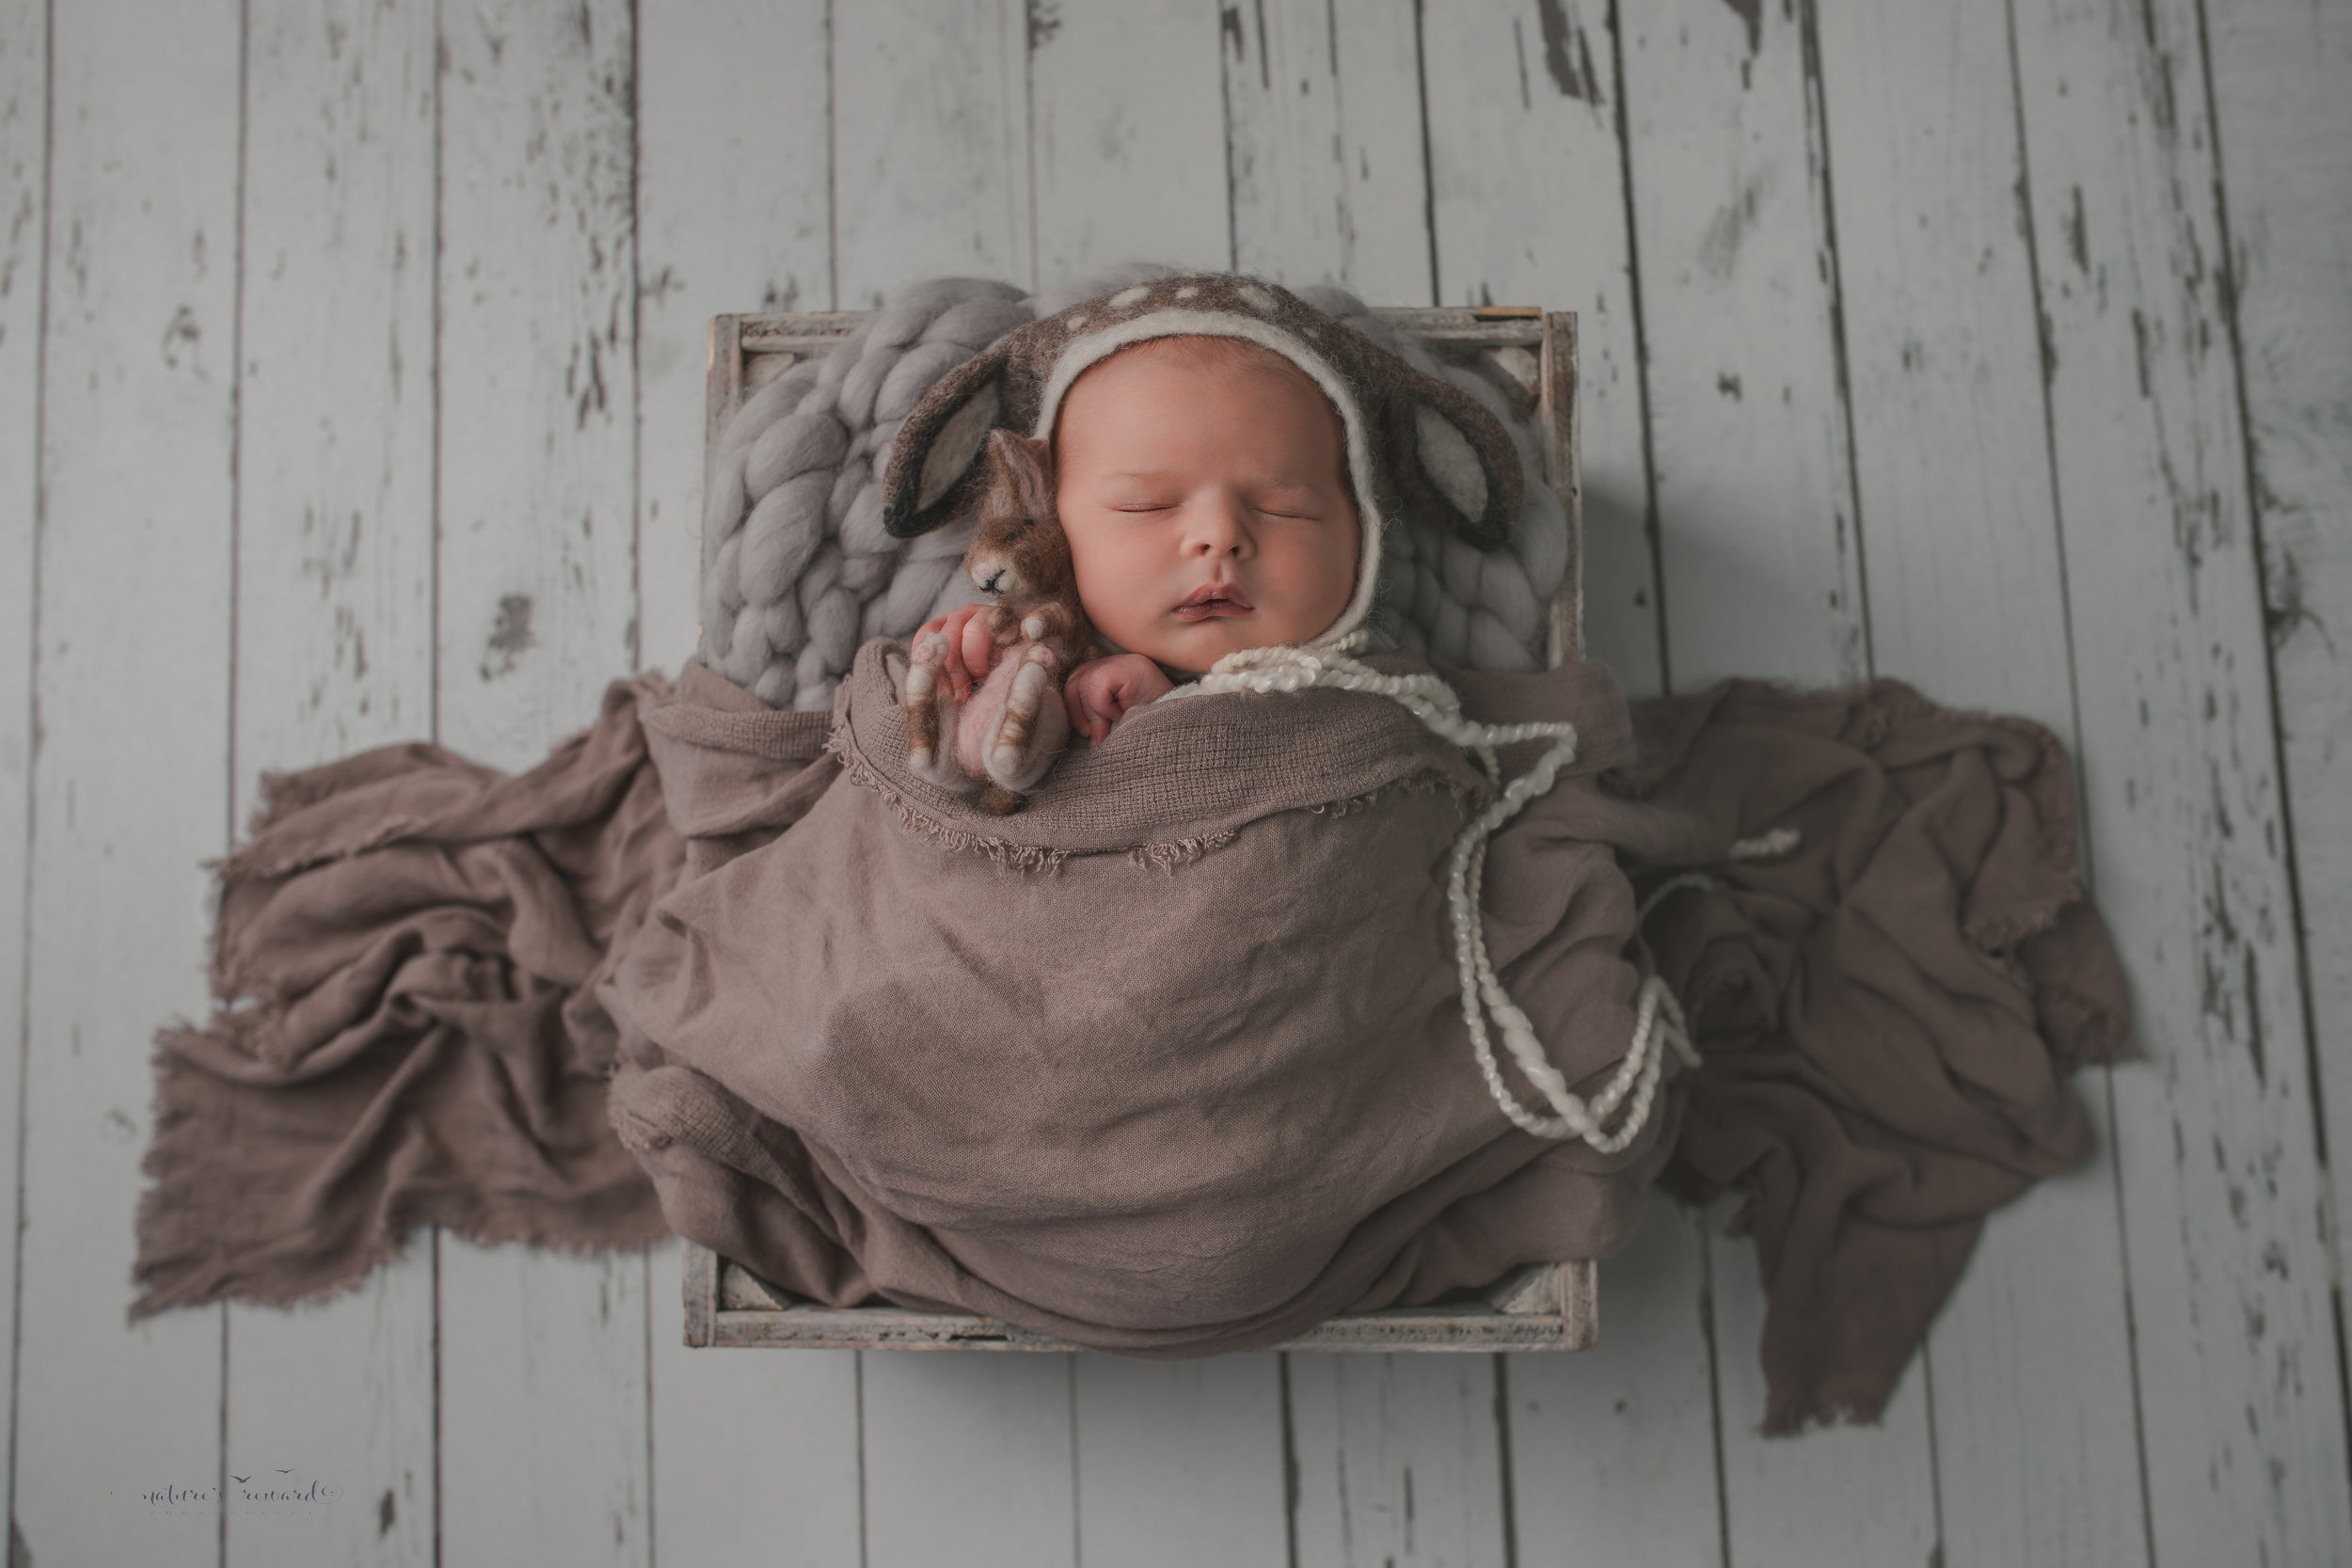 Newborn baby boy swaddled in white with brown scarf and wearing a deer bonnet, on a white wood floor, resting in a box, a portrait by Nature's Reward Photography